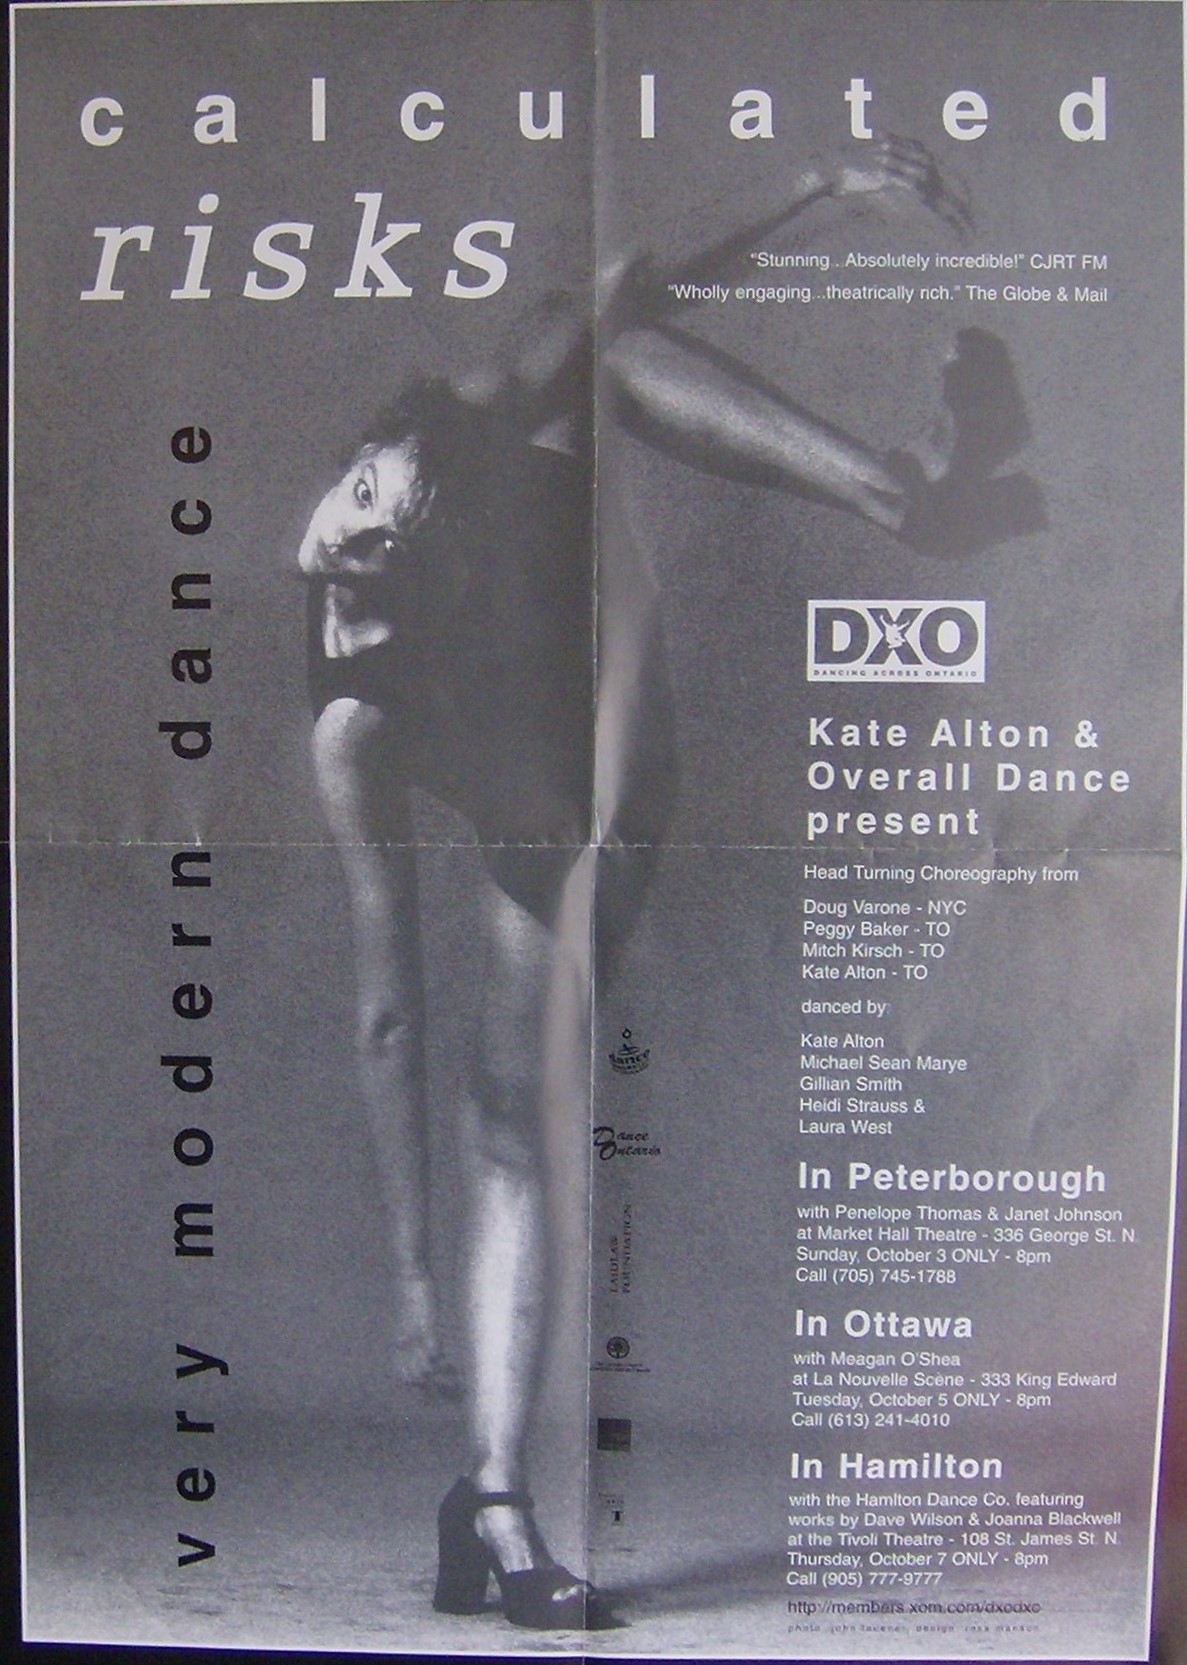 cropped calculated risks poster